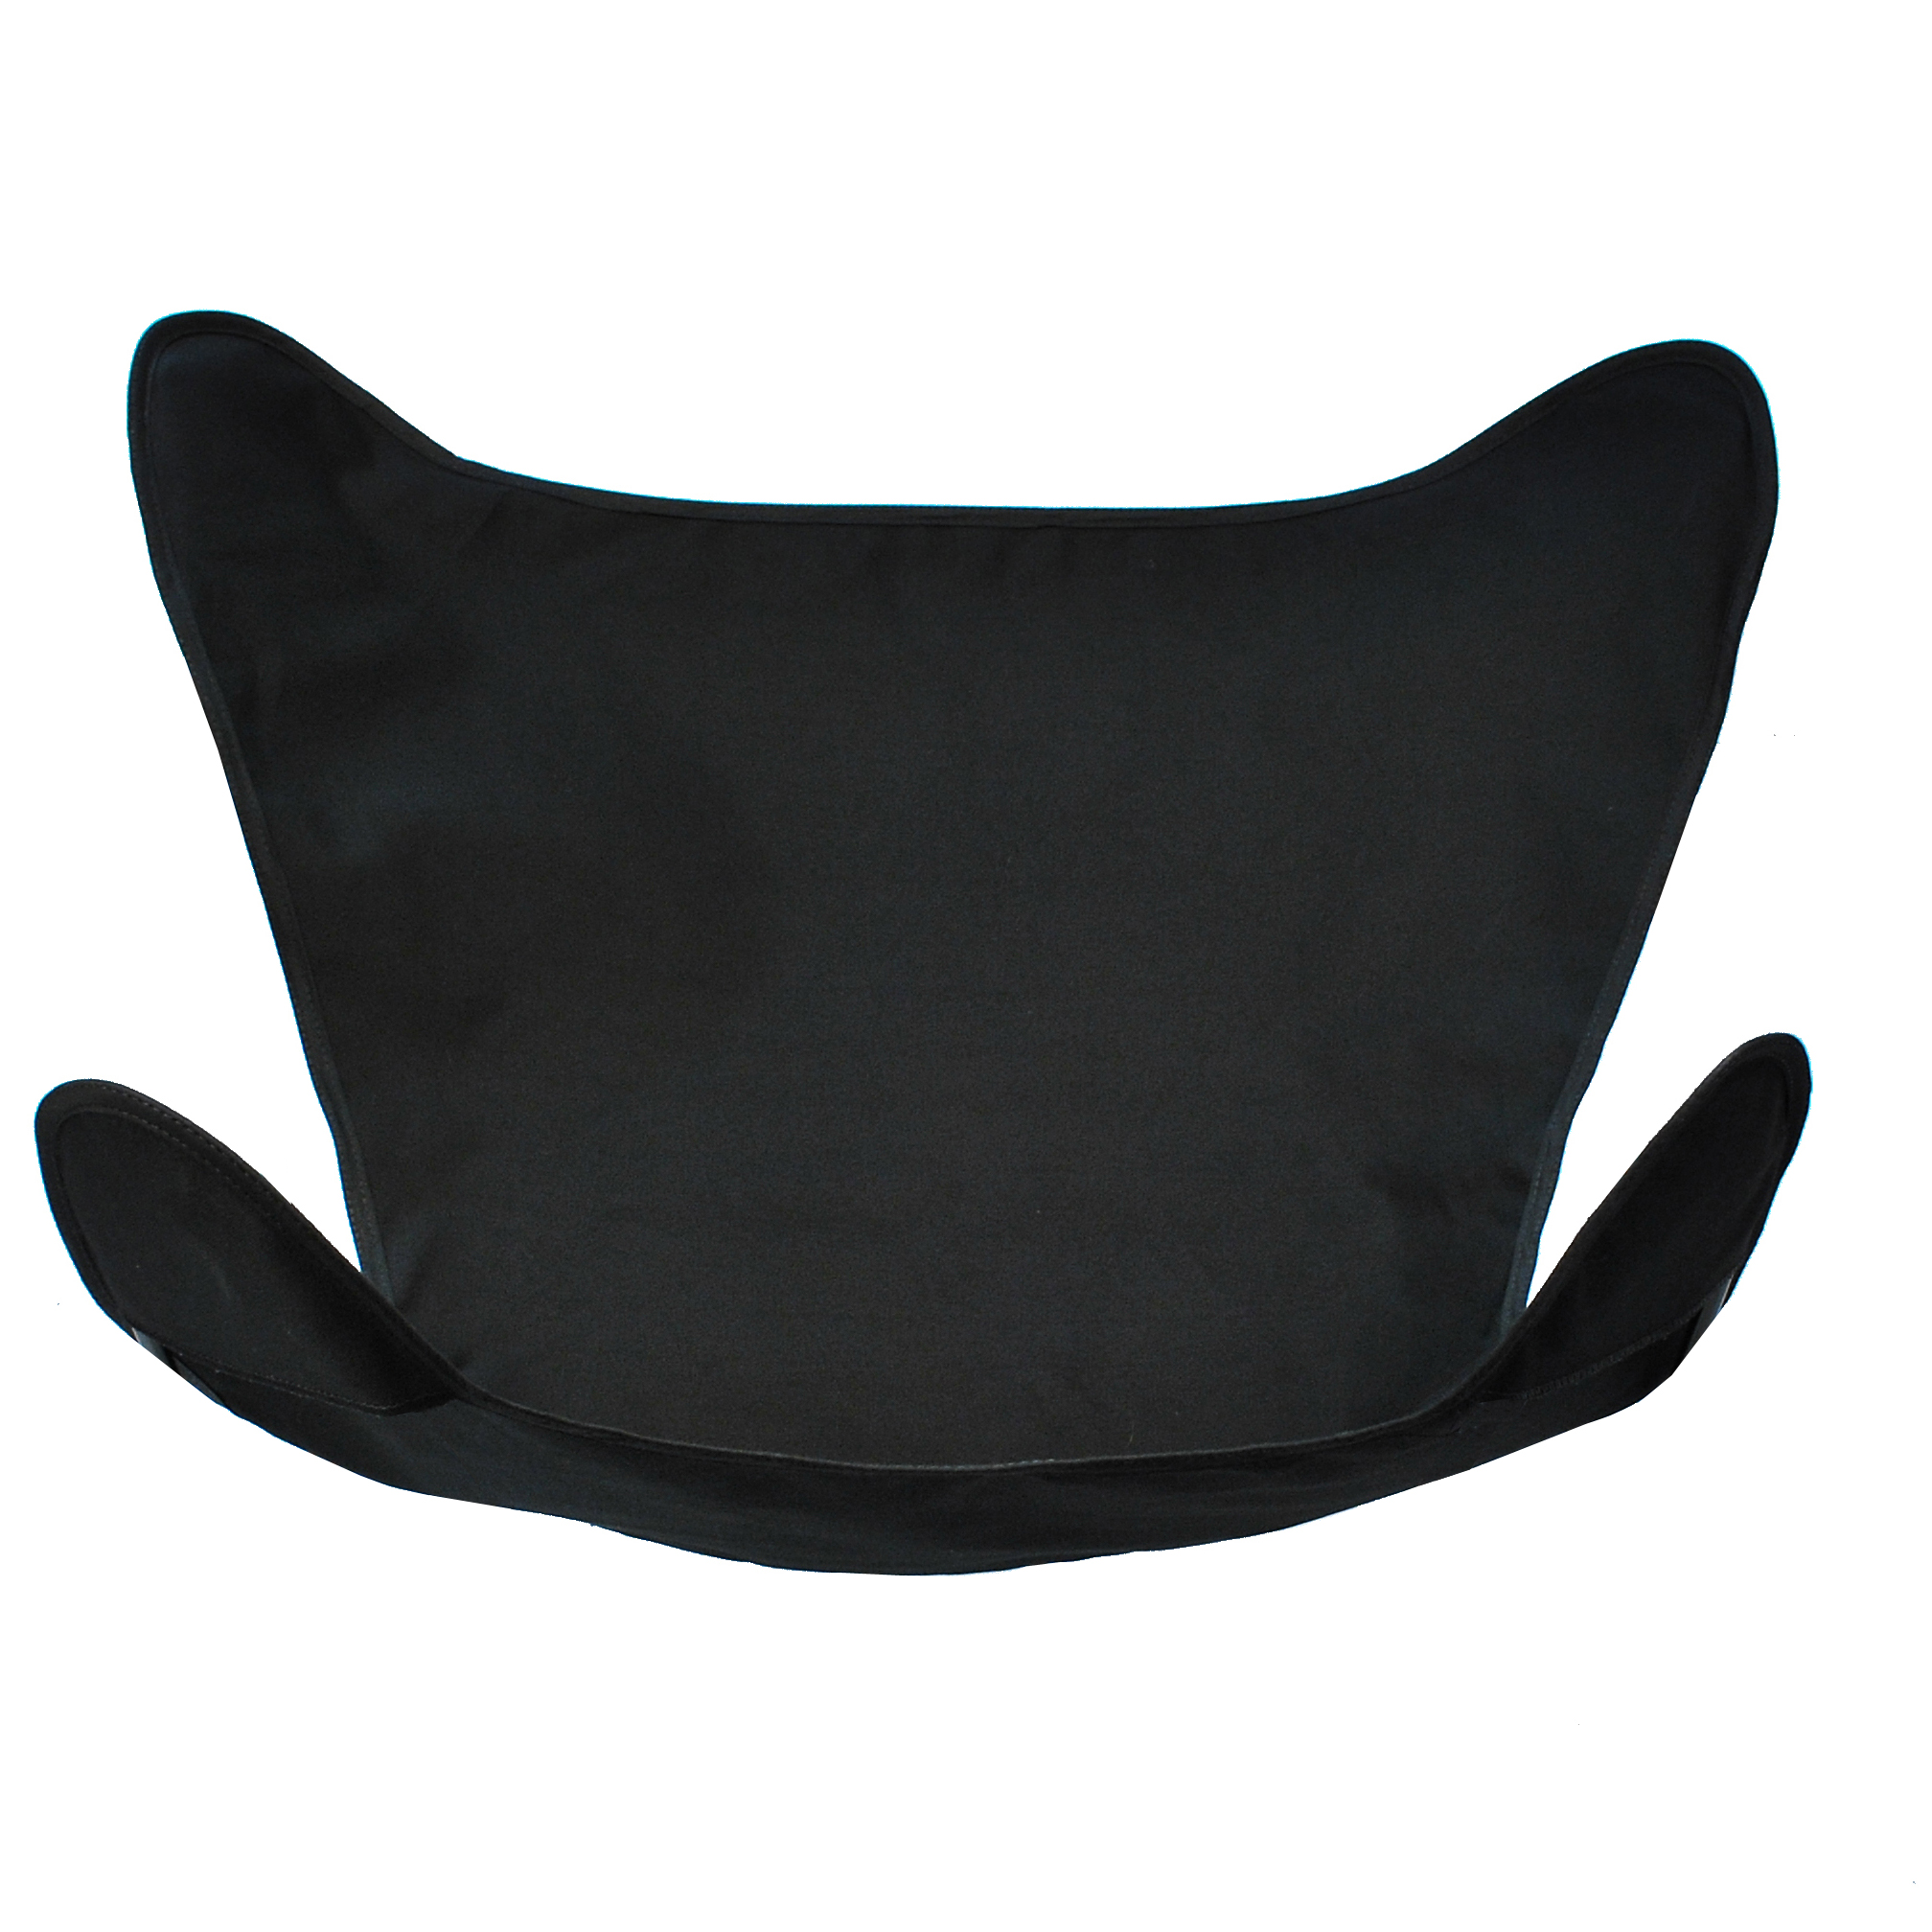 Replacement Cover for Butterfly Chair - Black